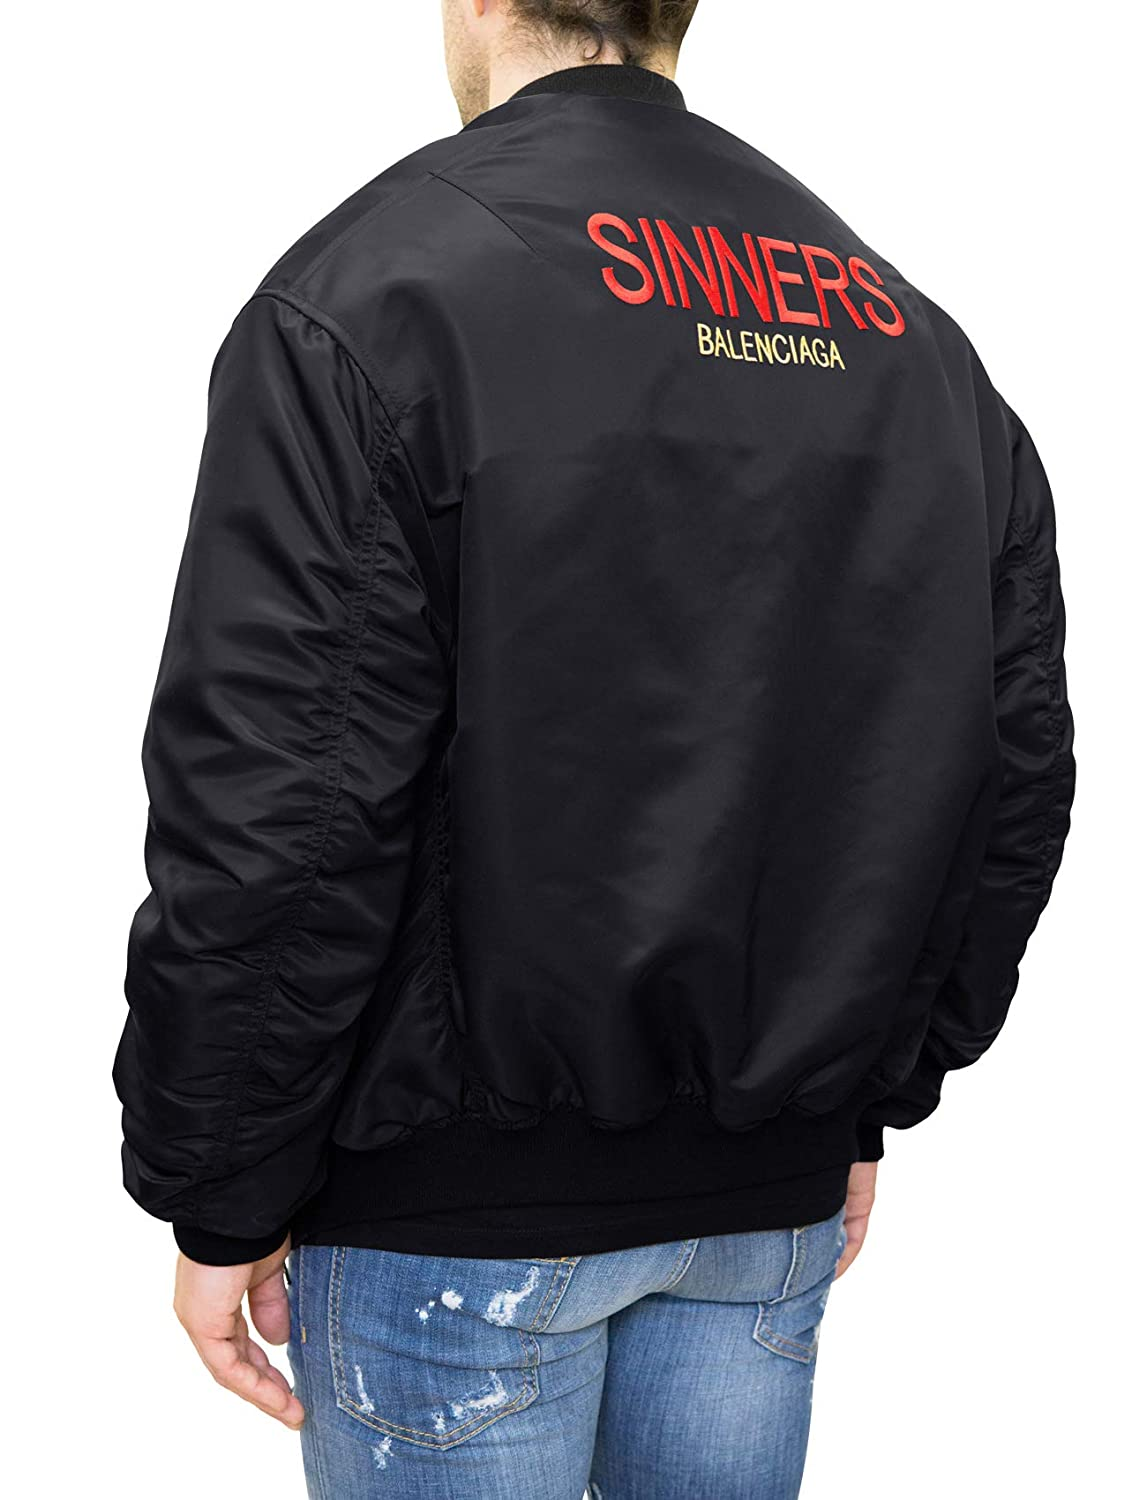 Balenciaga Sinners Bomber Aviator Jacket (FR44) Black at ...